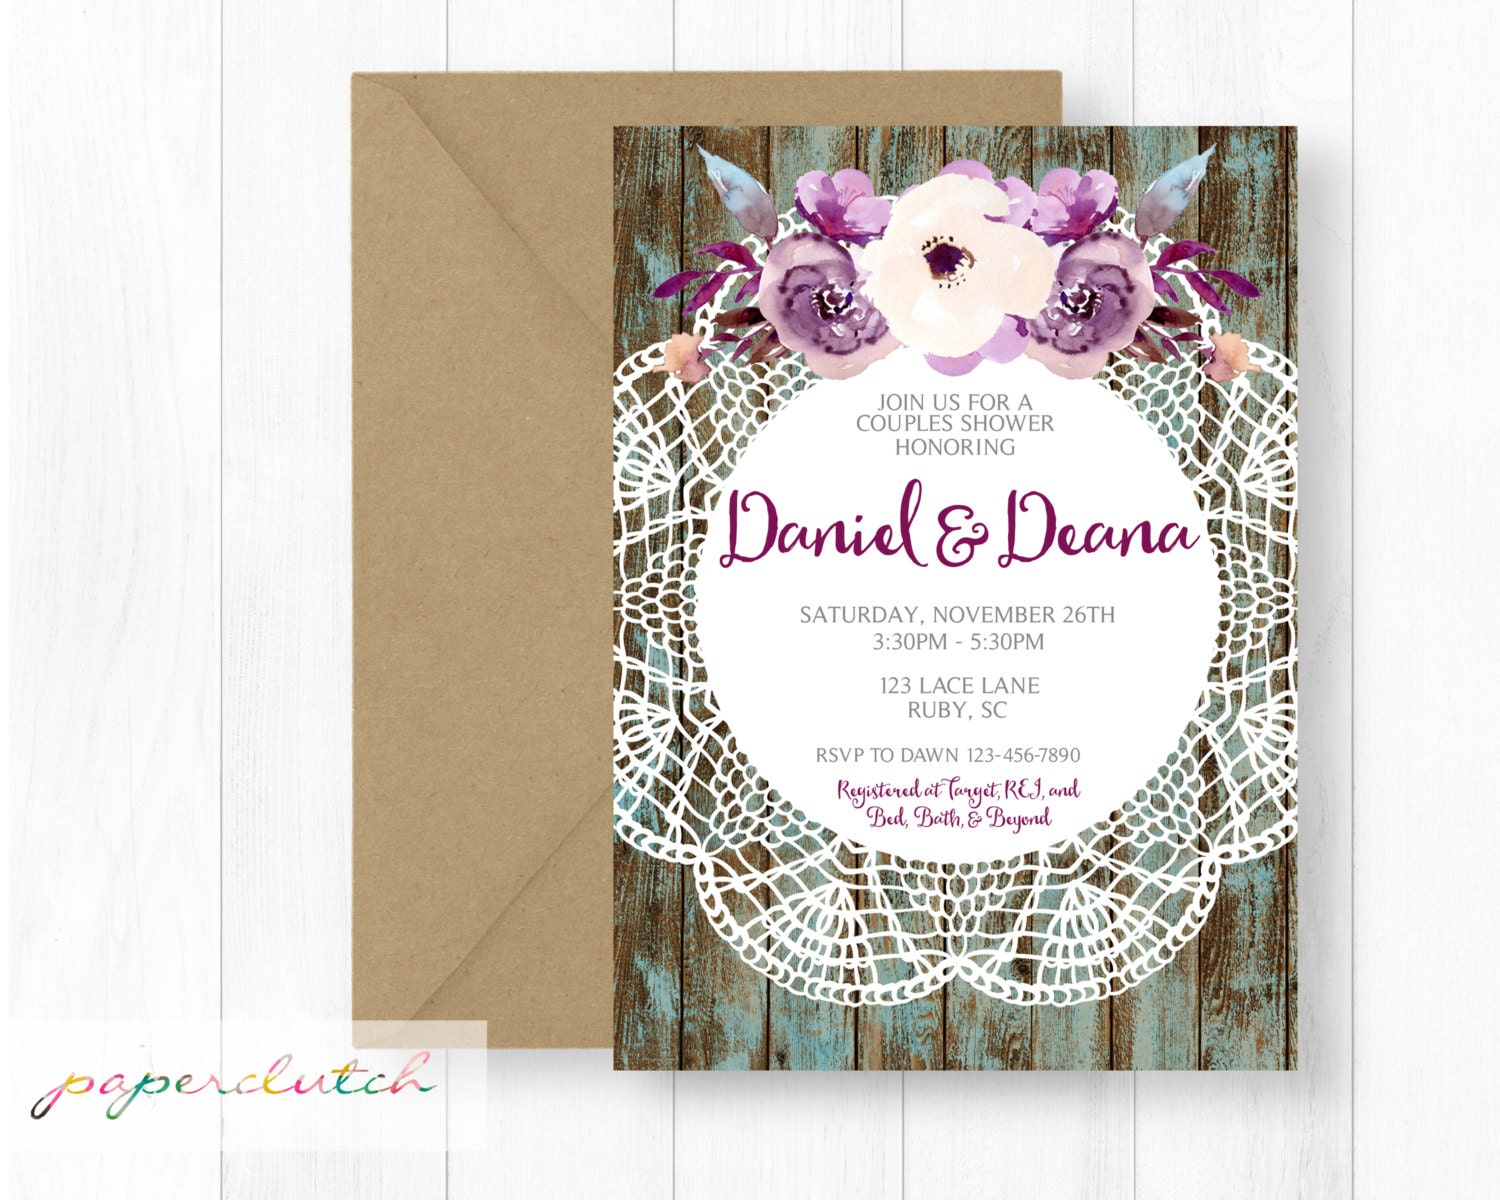 Rustic Bridal Shower Invitation Couples Shower Rustic Wood